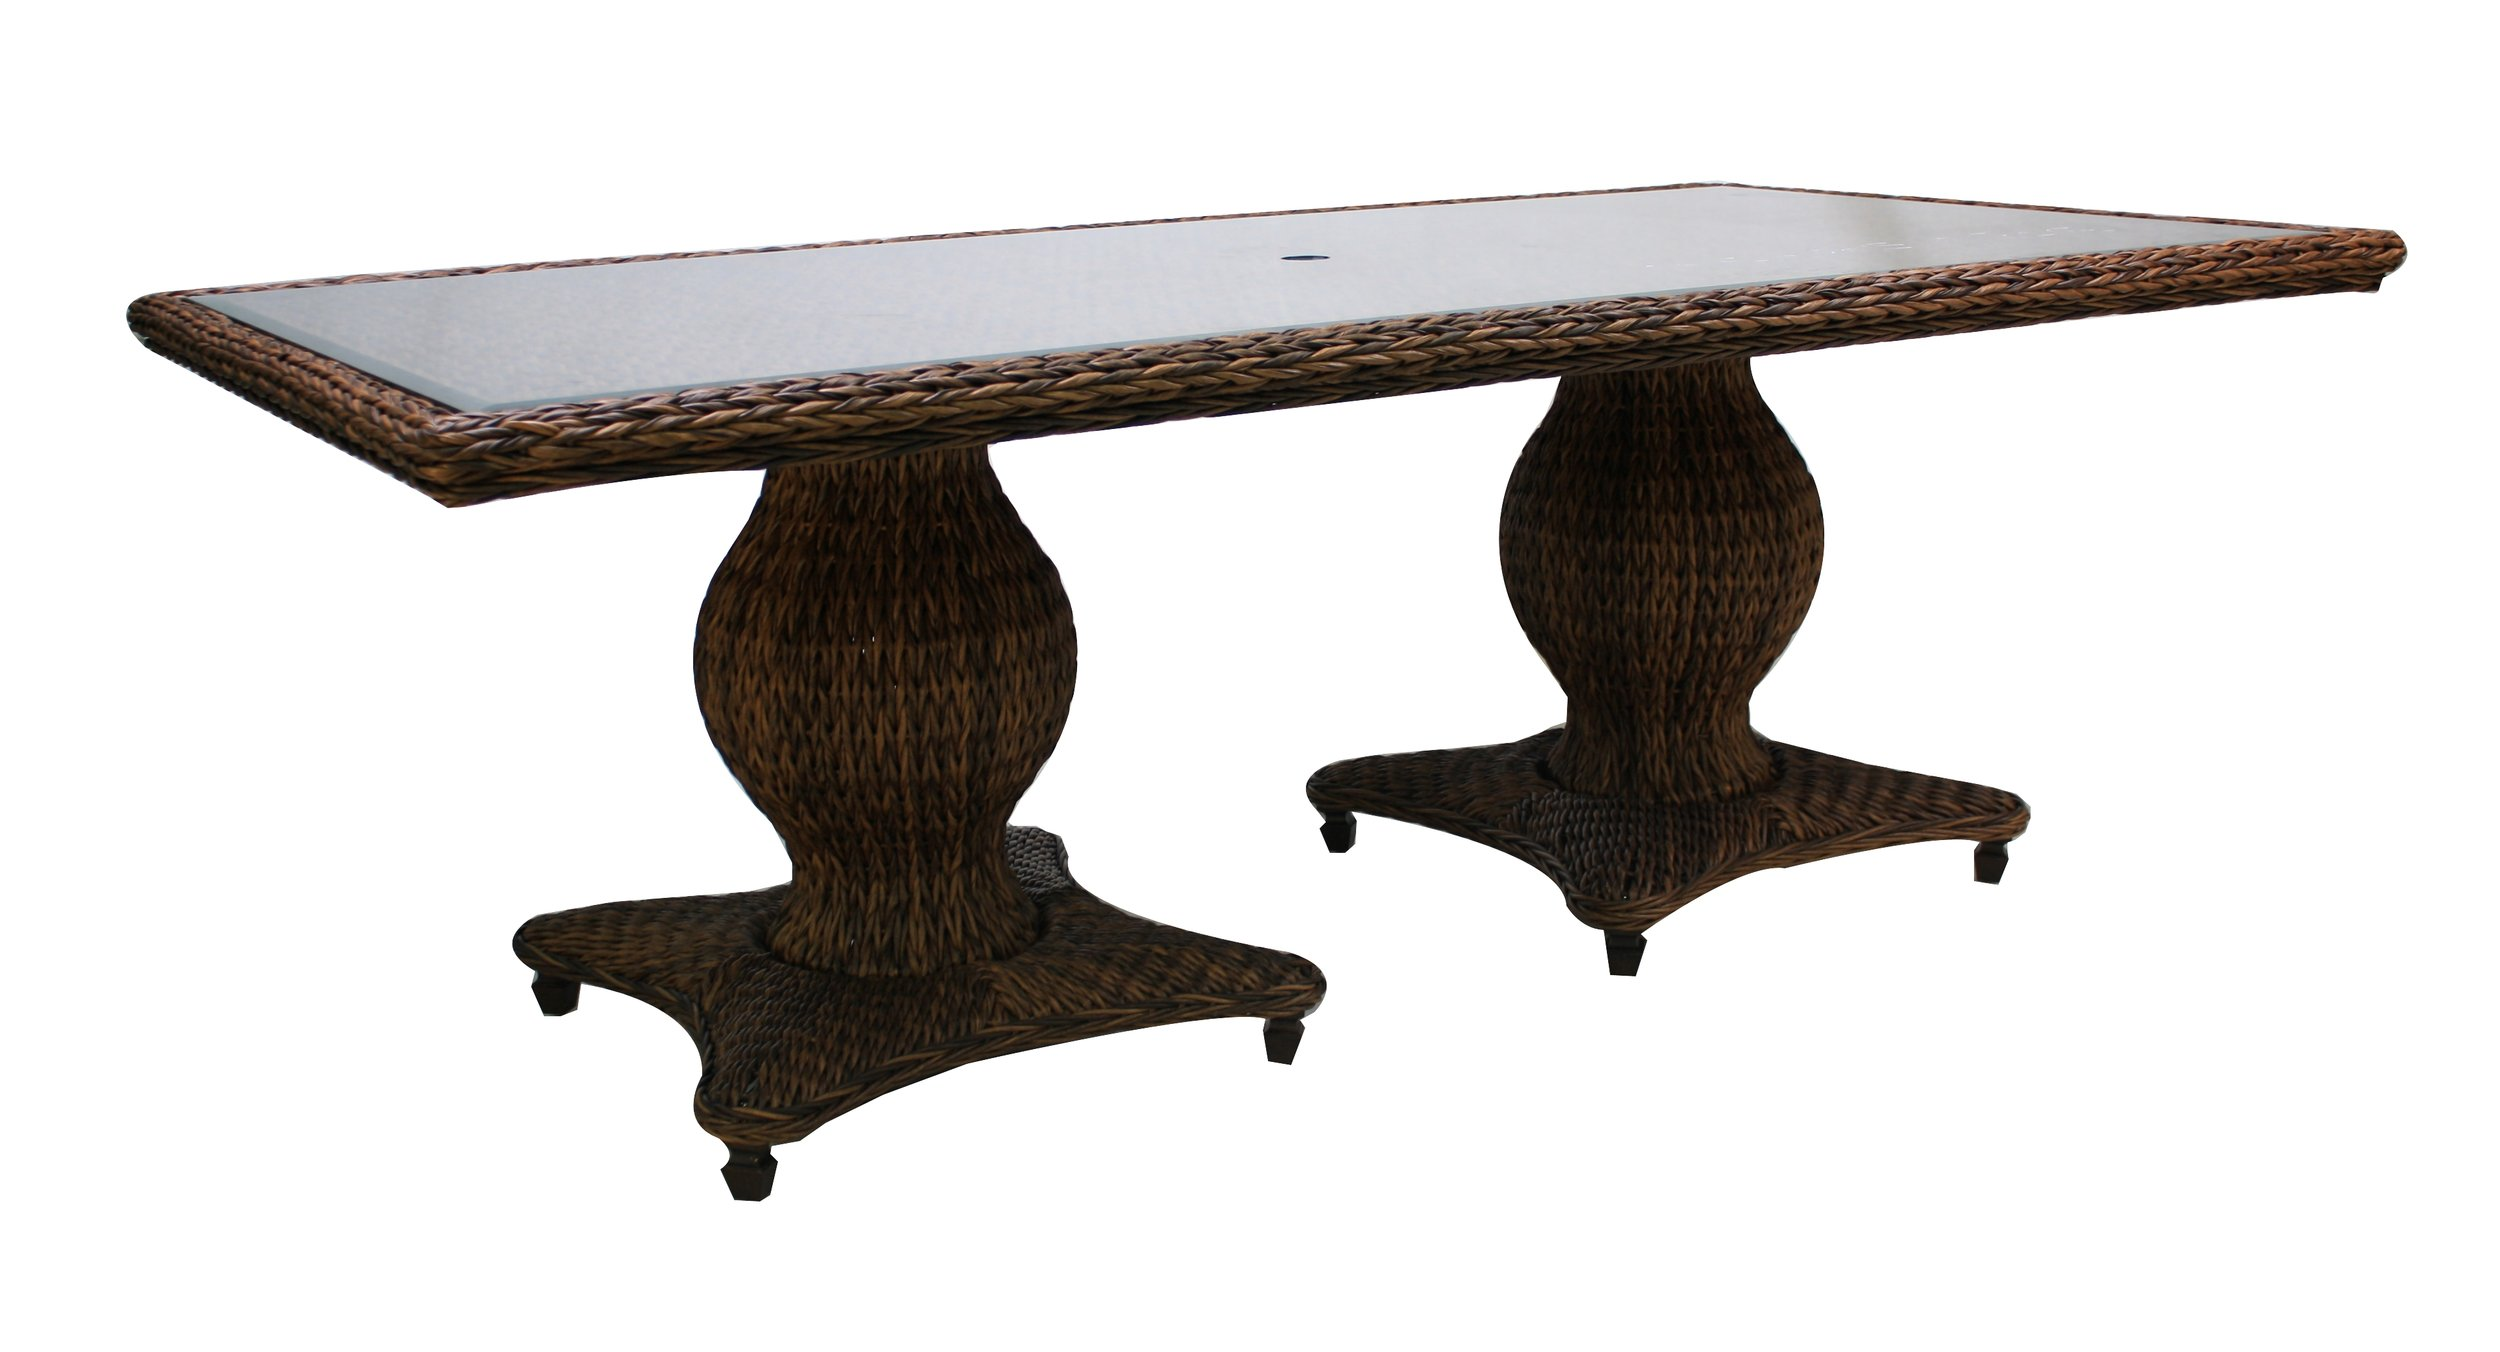 "973884 Antigua 84"" Rect. Dining Table 973896 Antigua 96"" Rect. Dining Table  *see Book  (973884/96TW Antigua Woven Top & Glass) (973884/96B Antigua 84""/96"" Rect. Dining Table Base)  84"""" x 44"" x 29.5"" or 96"" x 44"" x 29.5"""